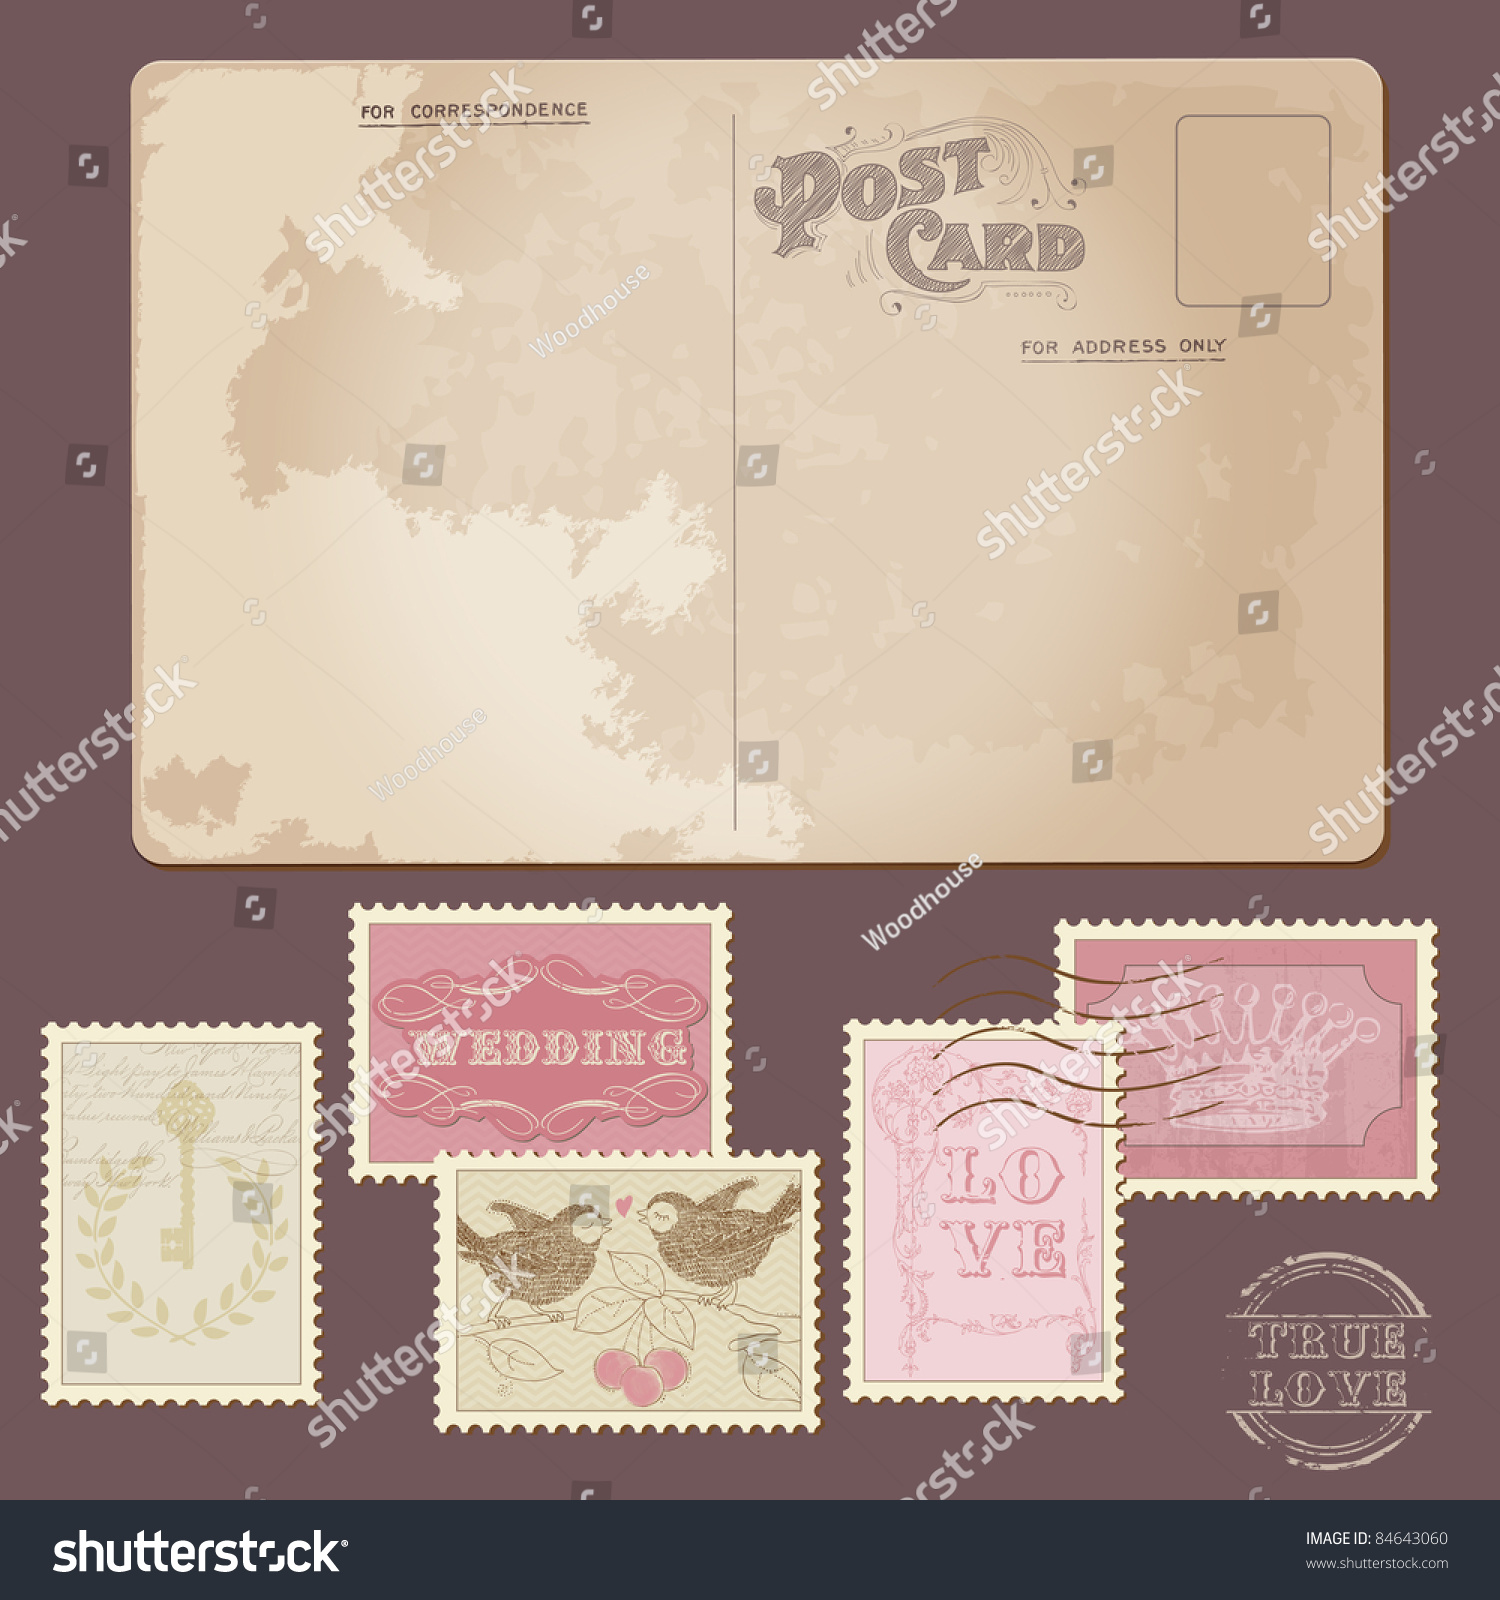 wedding invitation stamps uk. rubber stamps. great gatsy wedding, Wedding invitations